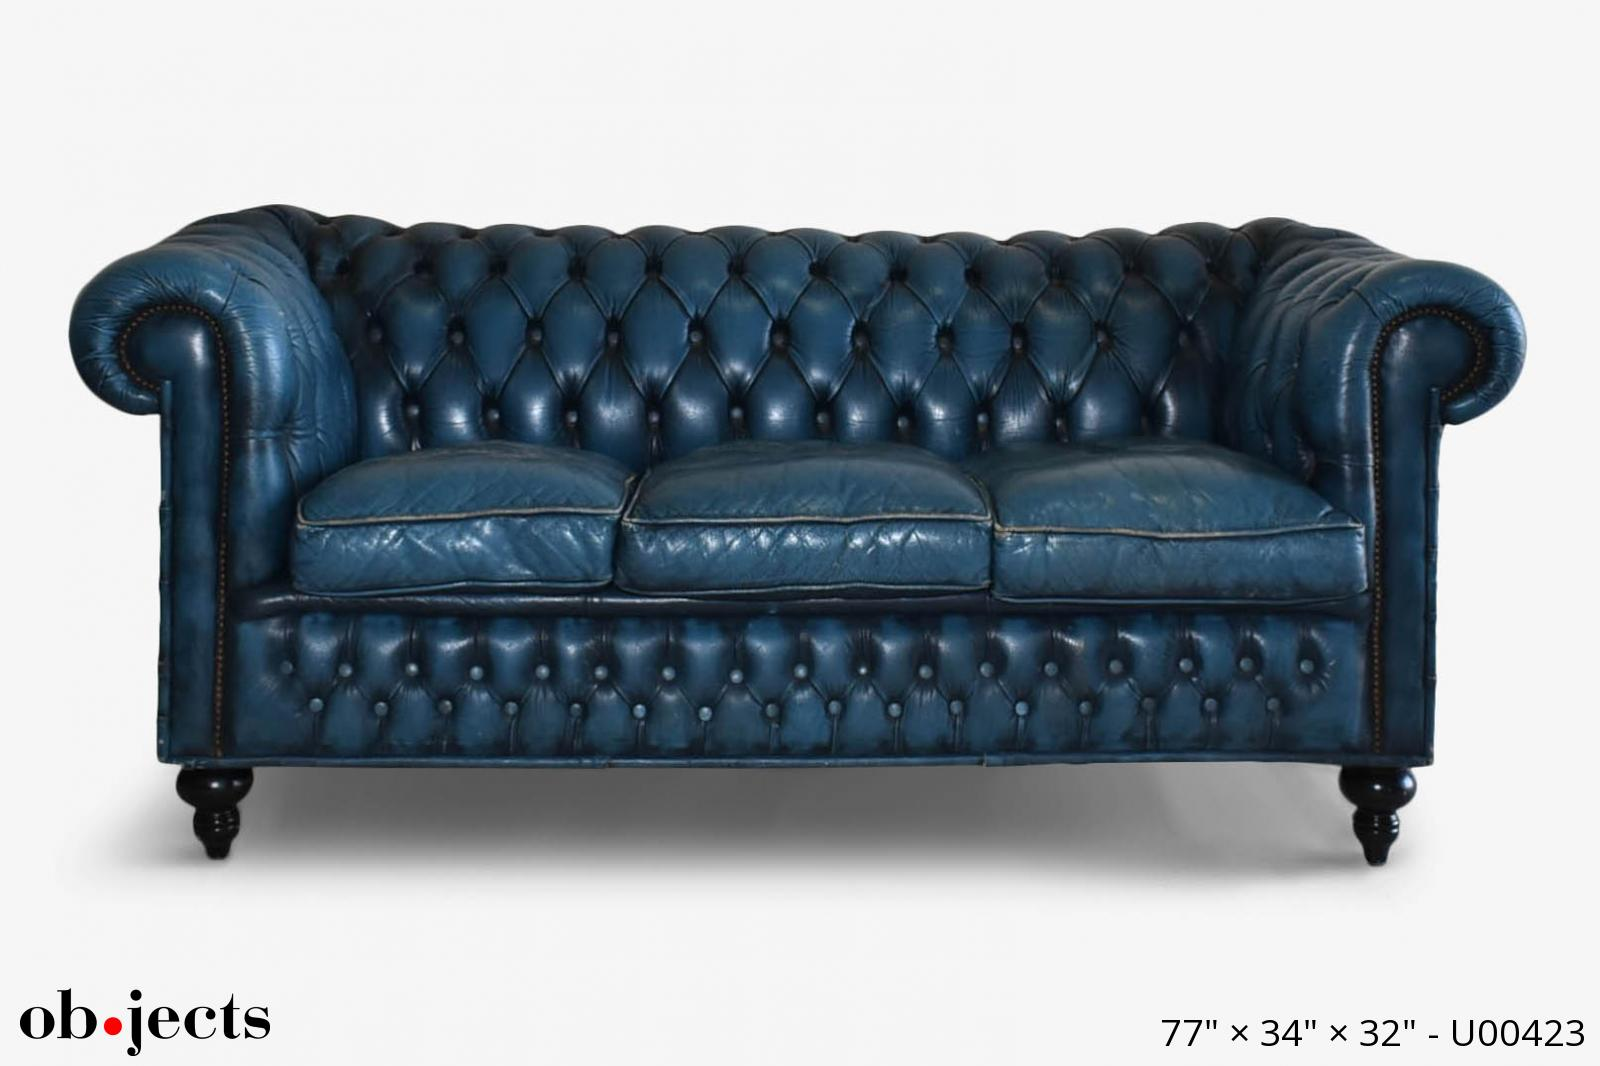 Sofa 6\' Chesterfield Blue Leather Tufted   Ob•jects